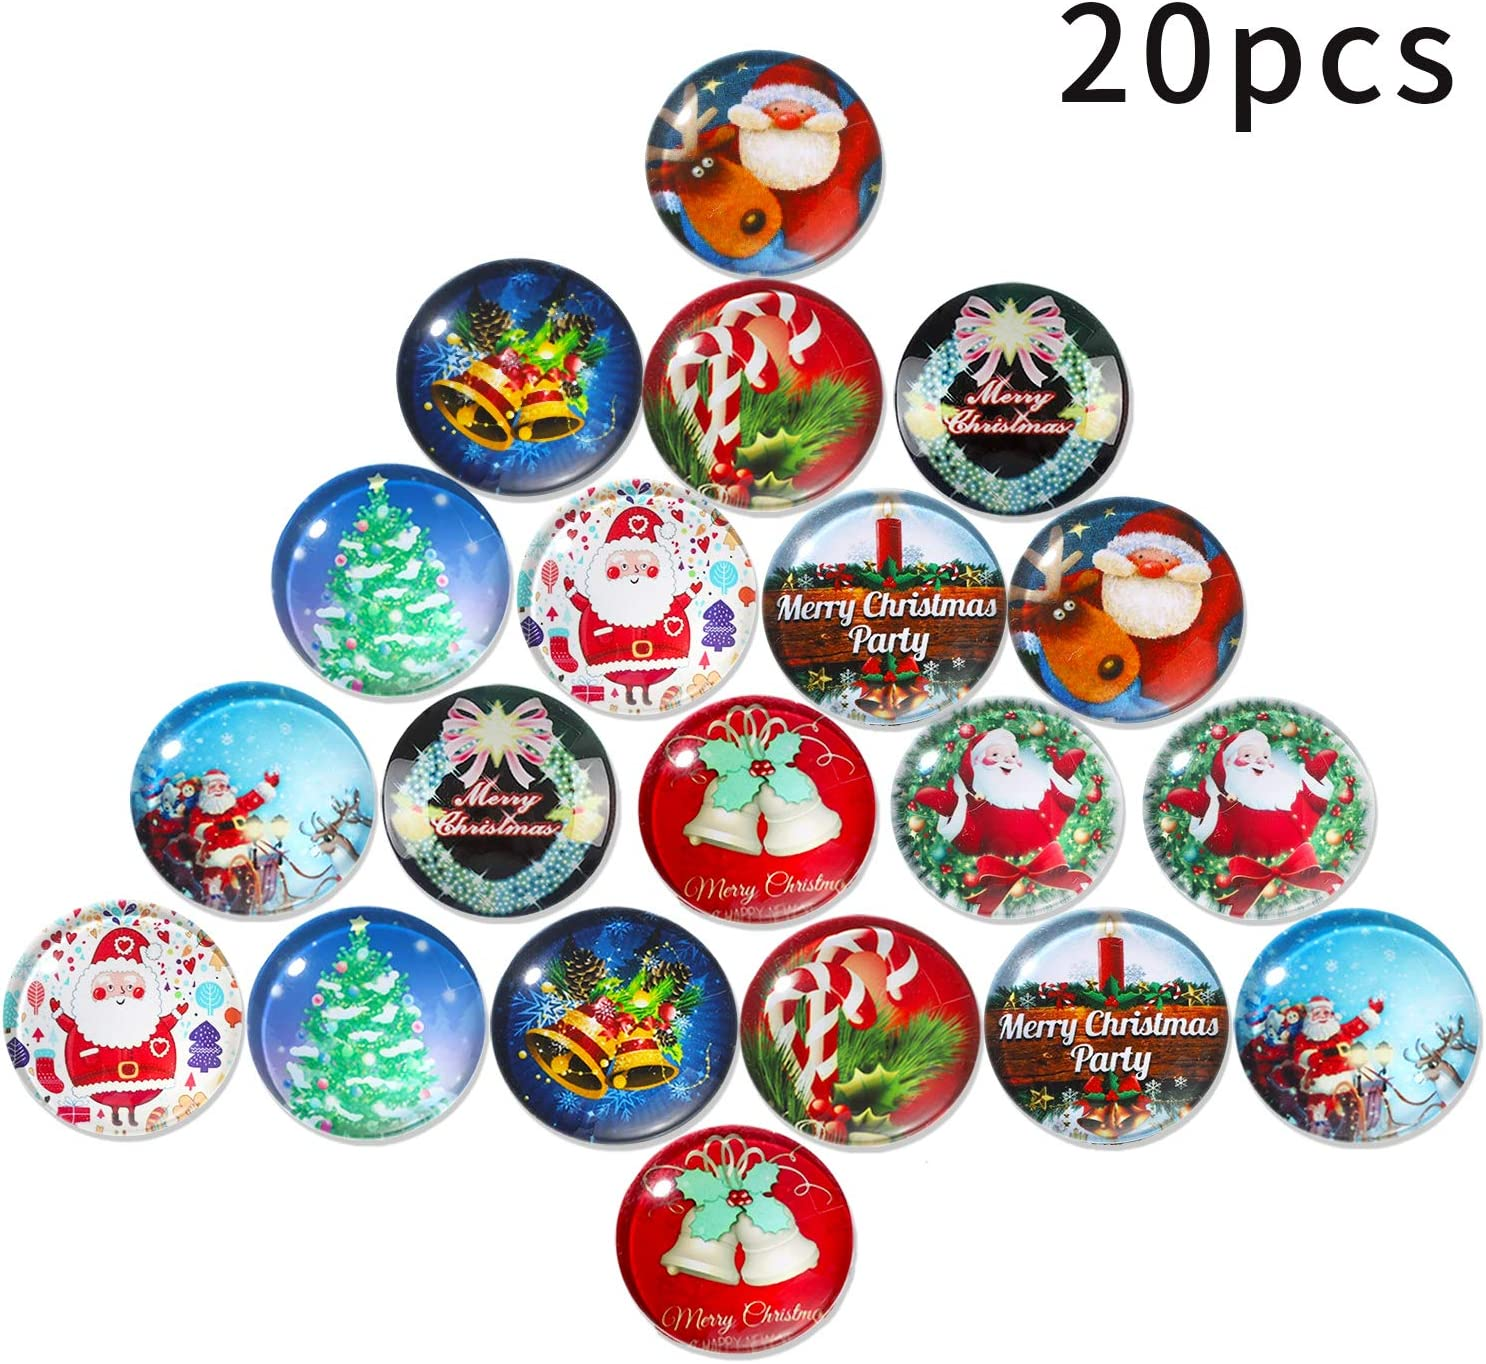 20 Pieces Christmas Magnets Glass Refrigerator Magnets 3D Decorative Glass Fridge Magnets with Christmas Patterns for Map, Whiteboard and Refrigerator, 1.18 Inch